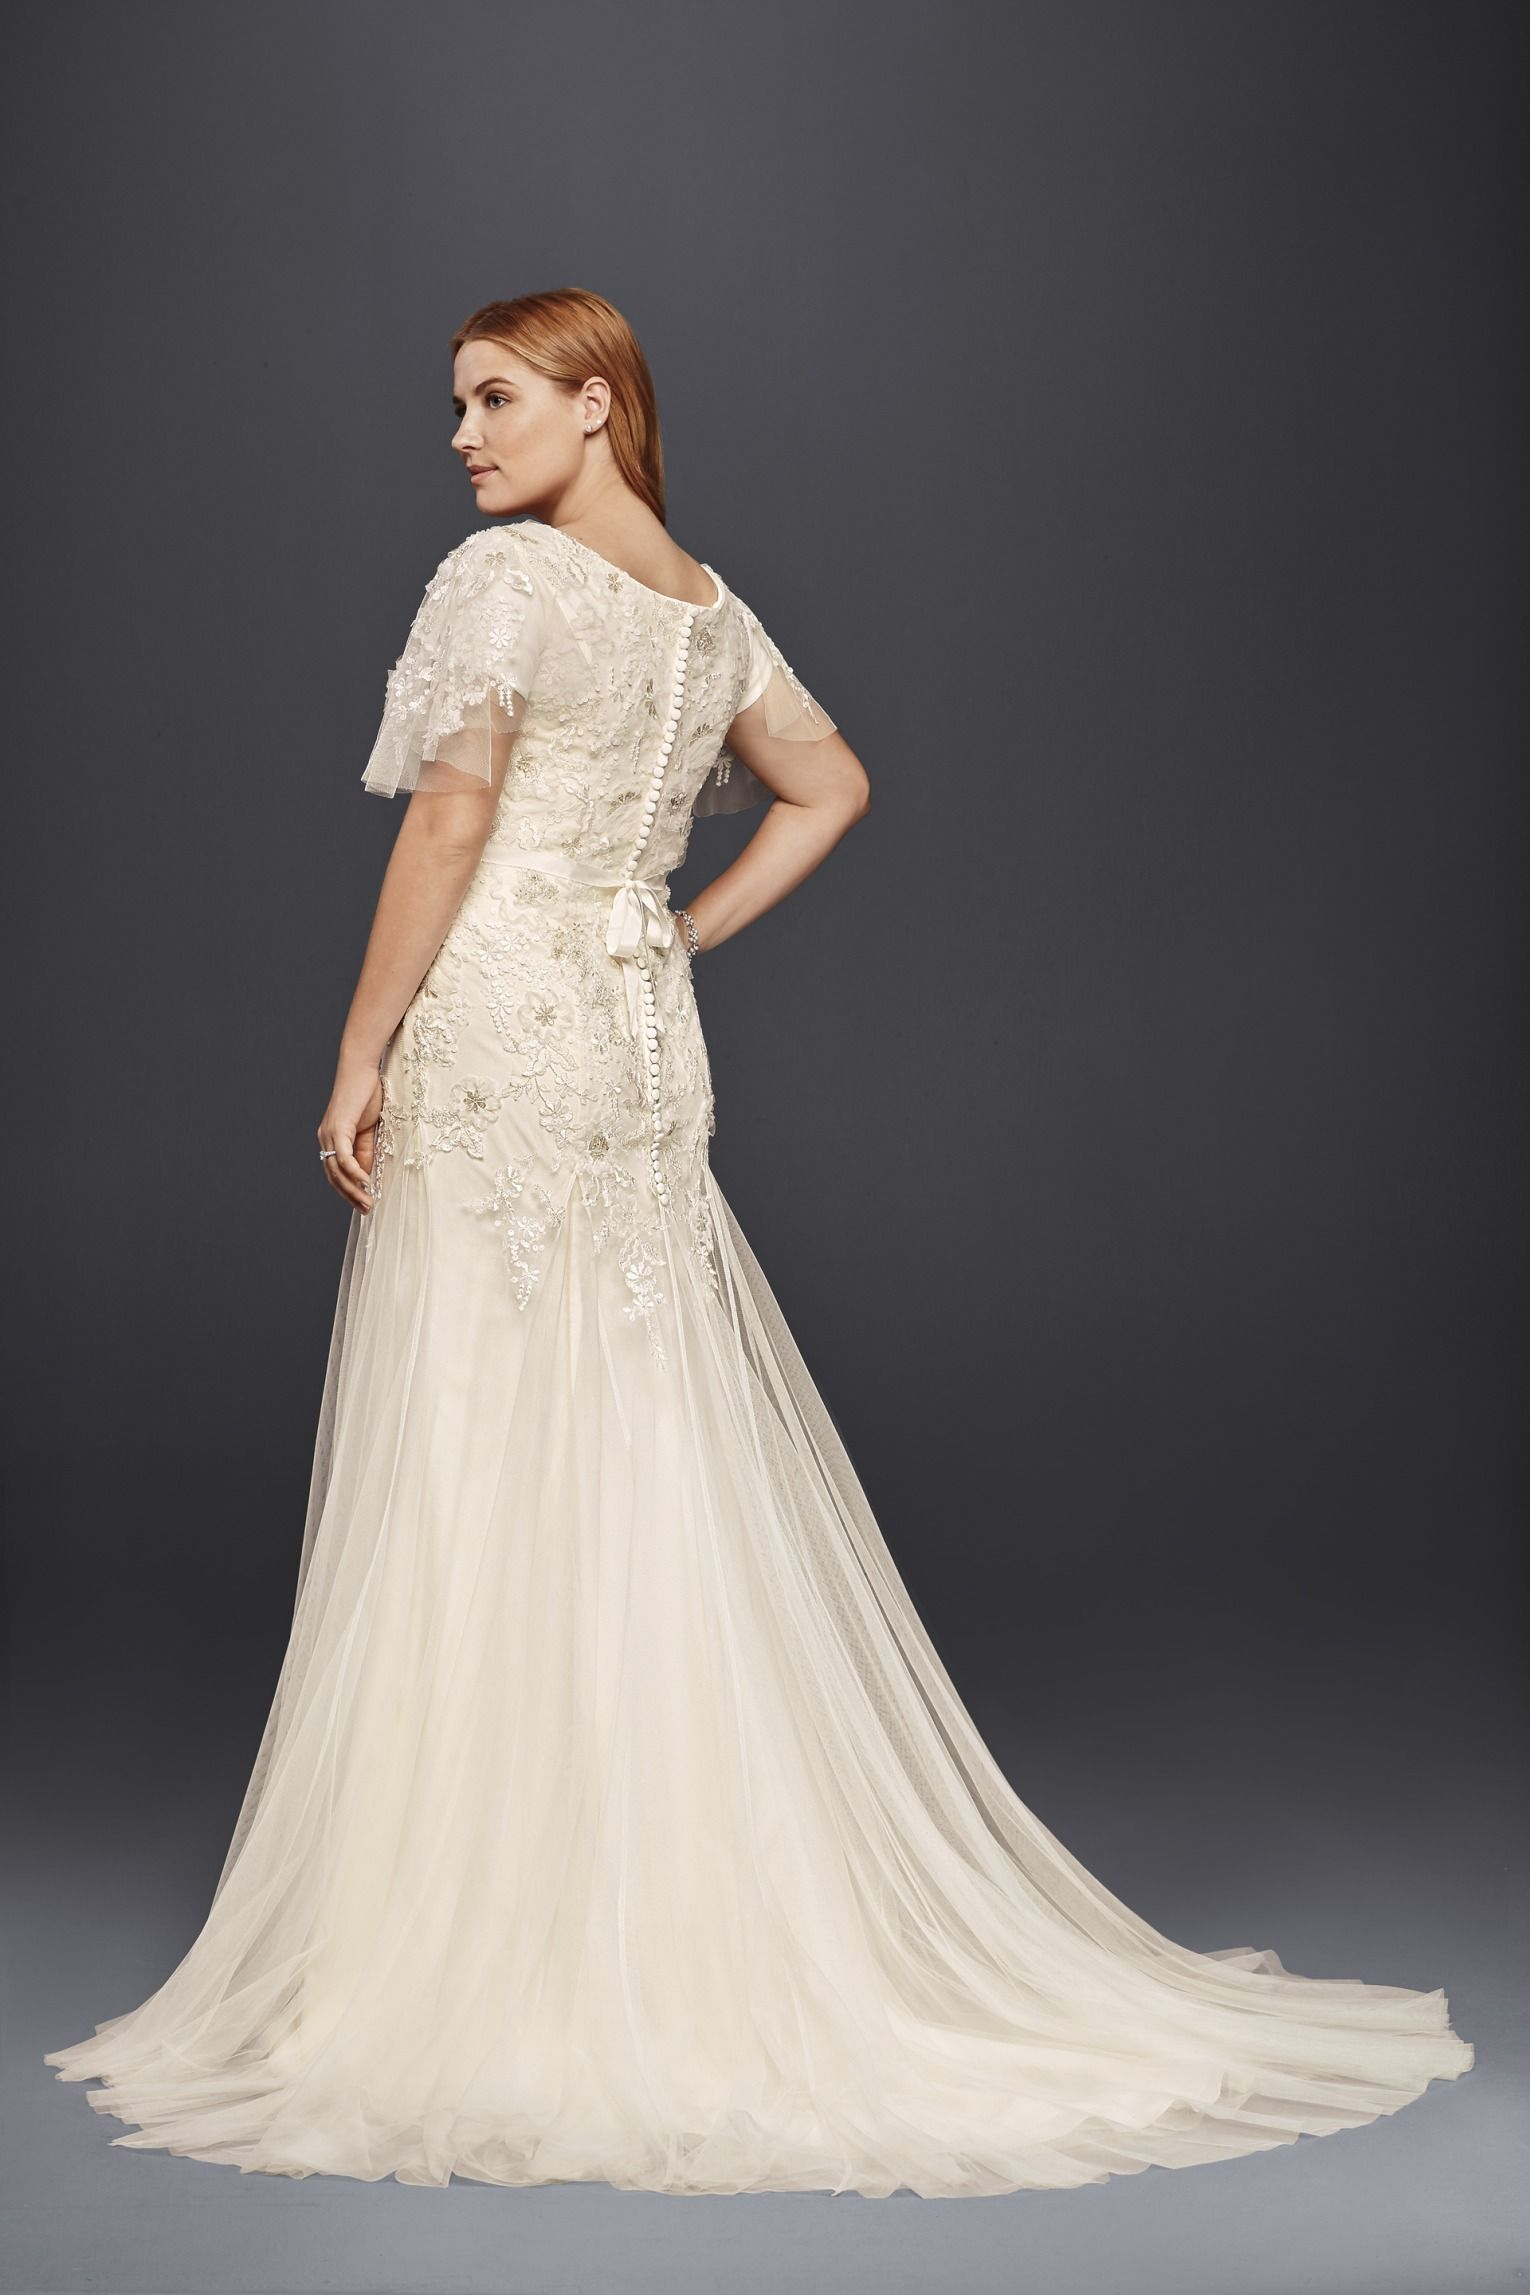 Catholic wedding dresses  Flutter sleeves and romantic florals on this modest wedding dress